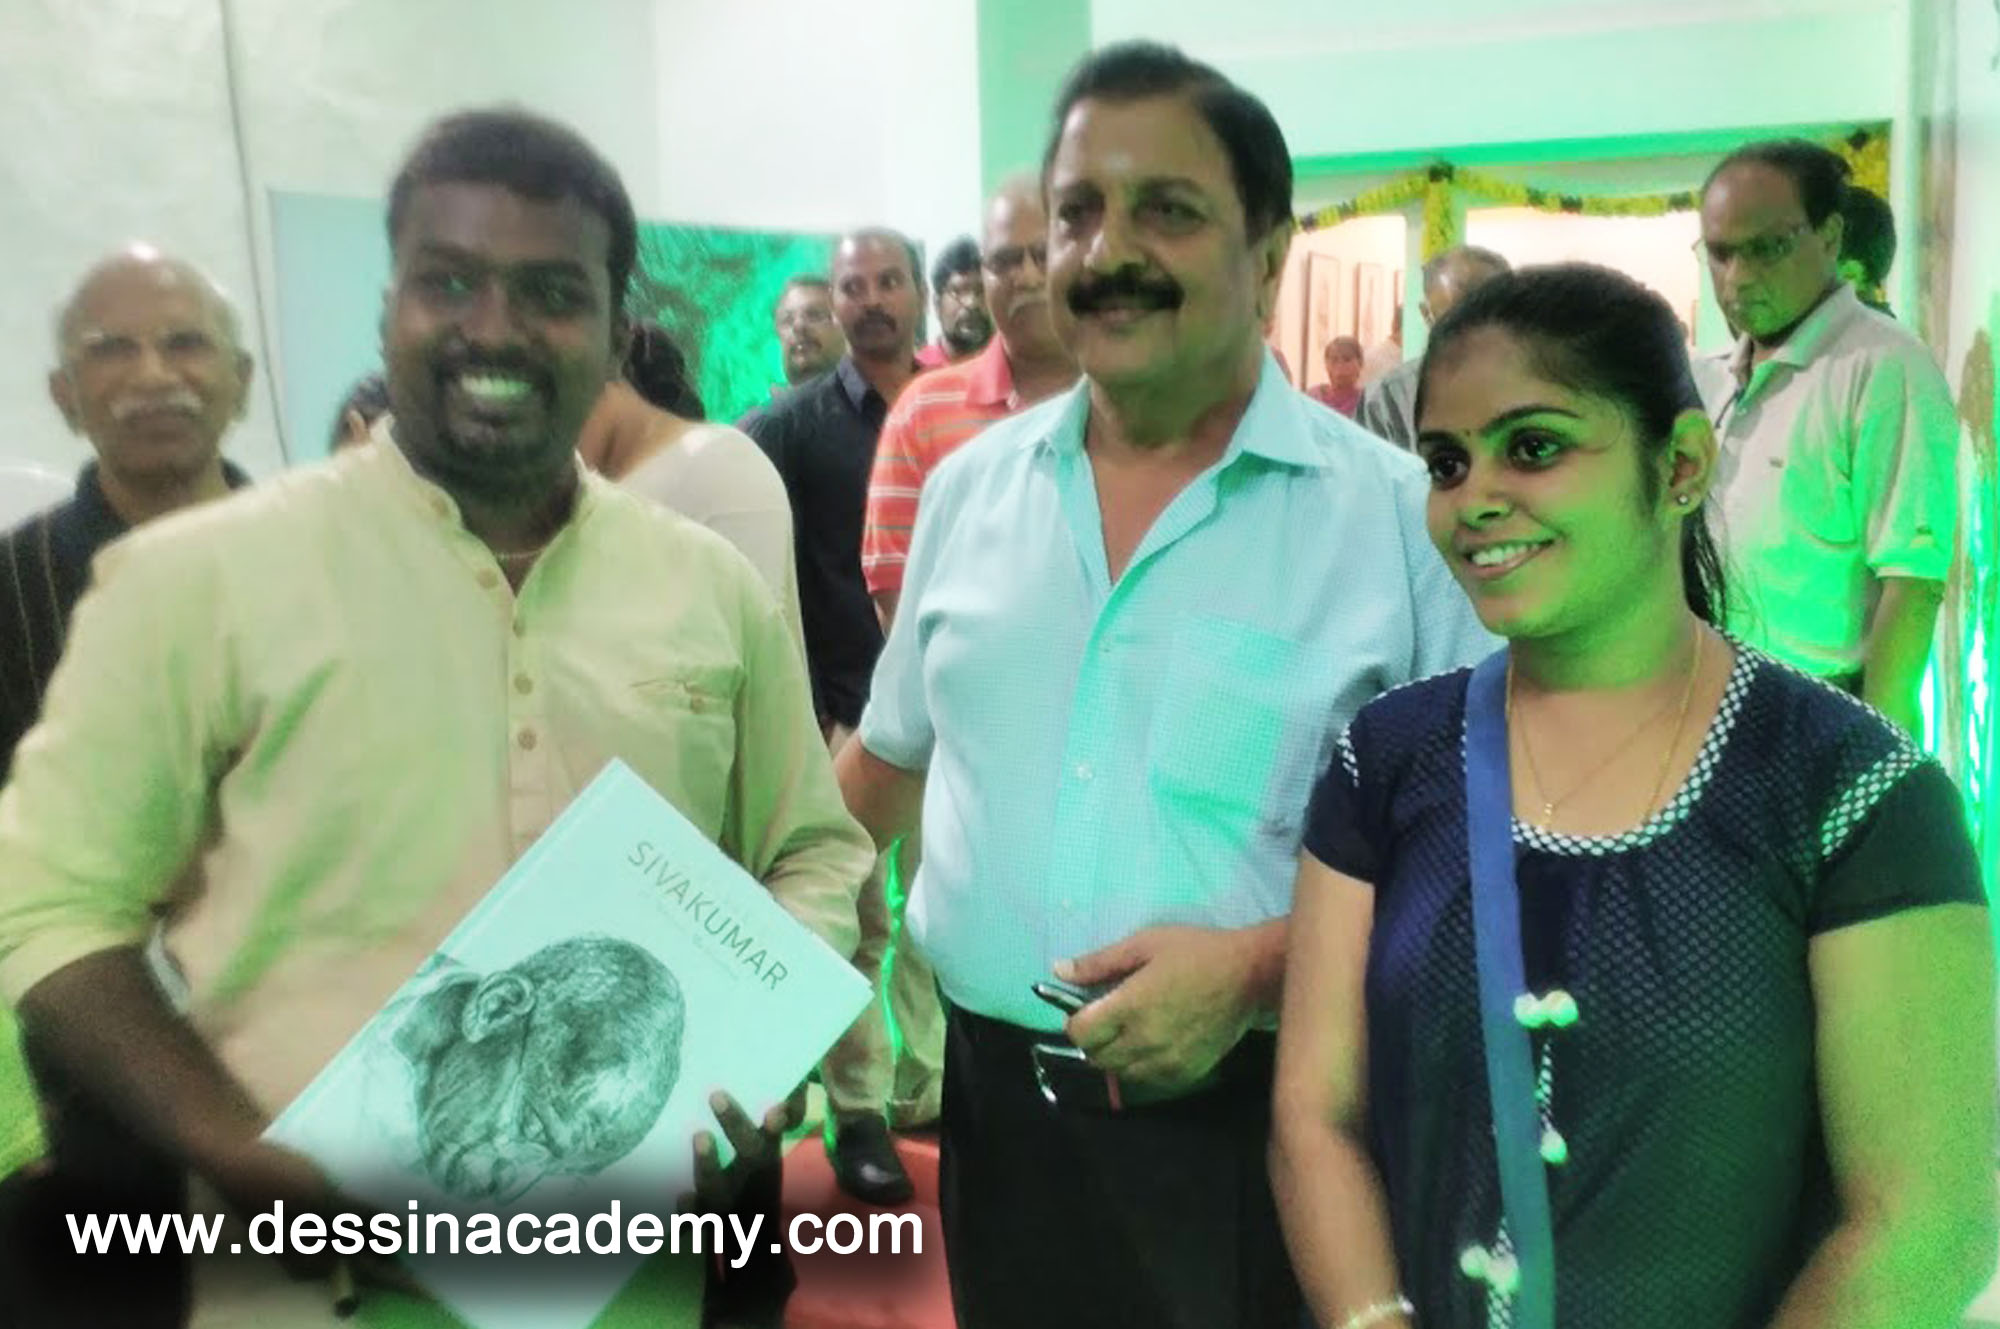 Dessin School of arts Event Gallery 4, canvas painting Institute in Anna Nagar P BlockPearl Kids International